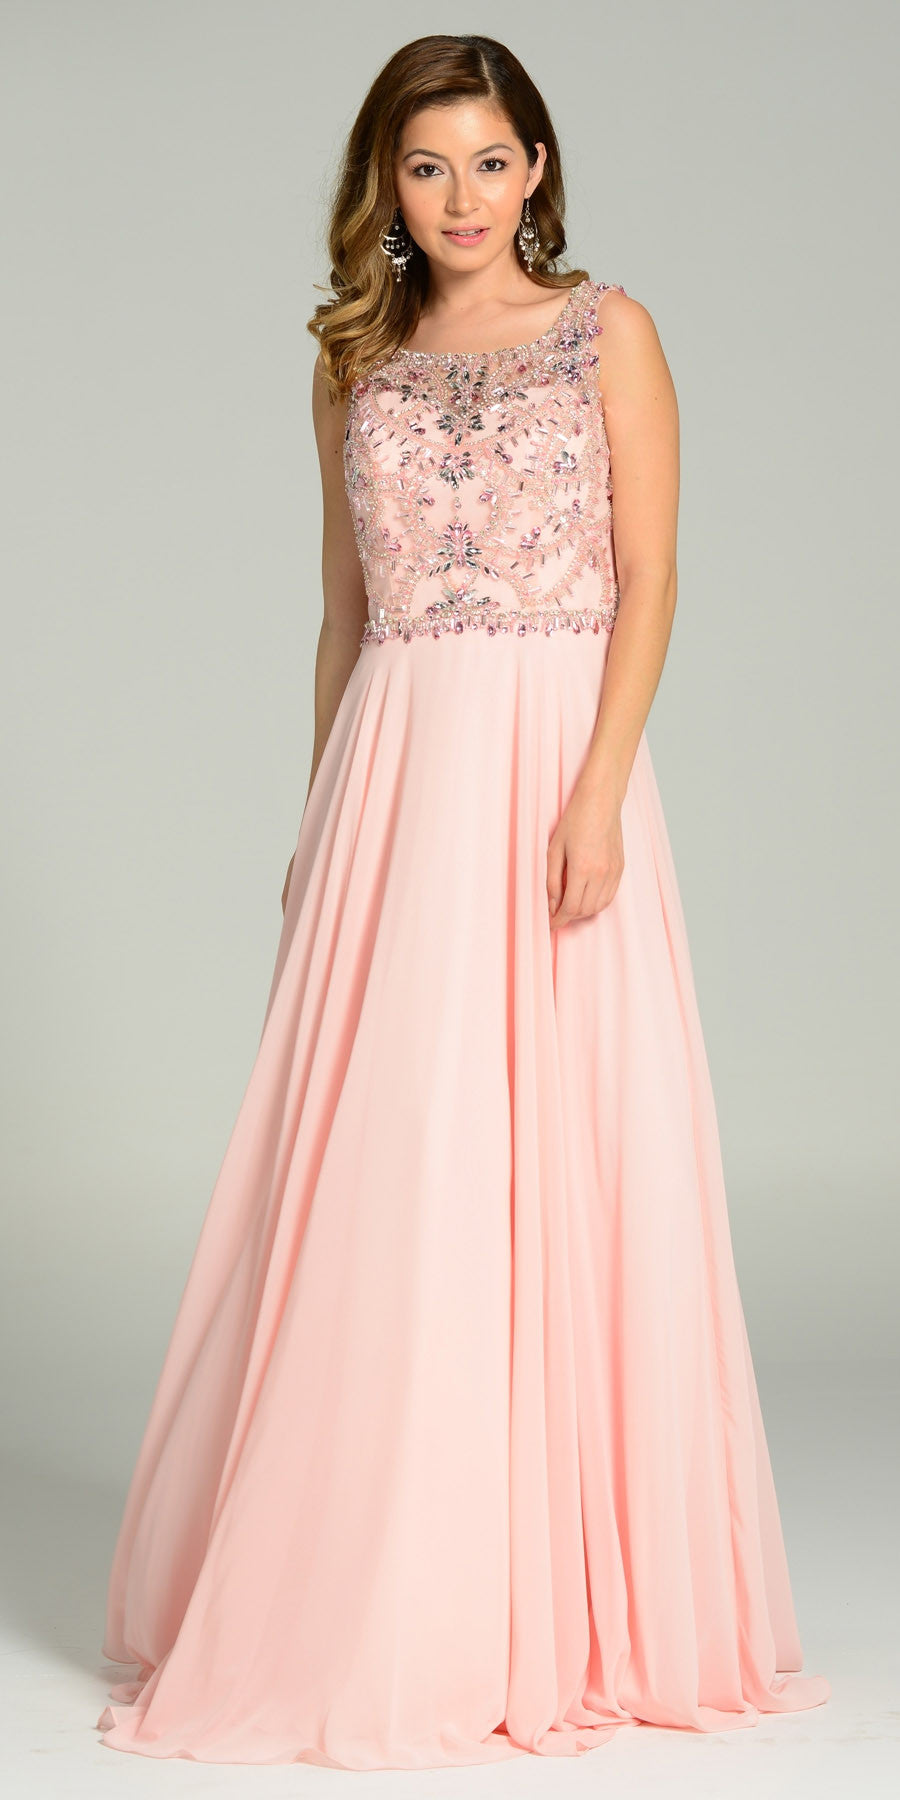 ON SPECIAL LIMITED STOCK - Floor Length A Line Blush Dress Chiffon/Mesh Rhinestone Bodice